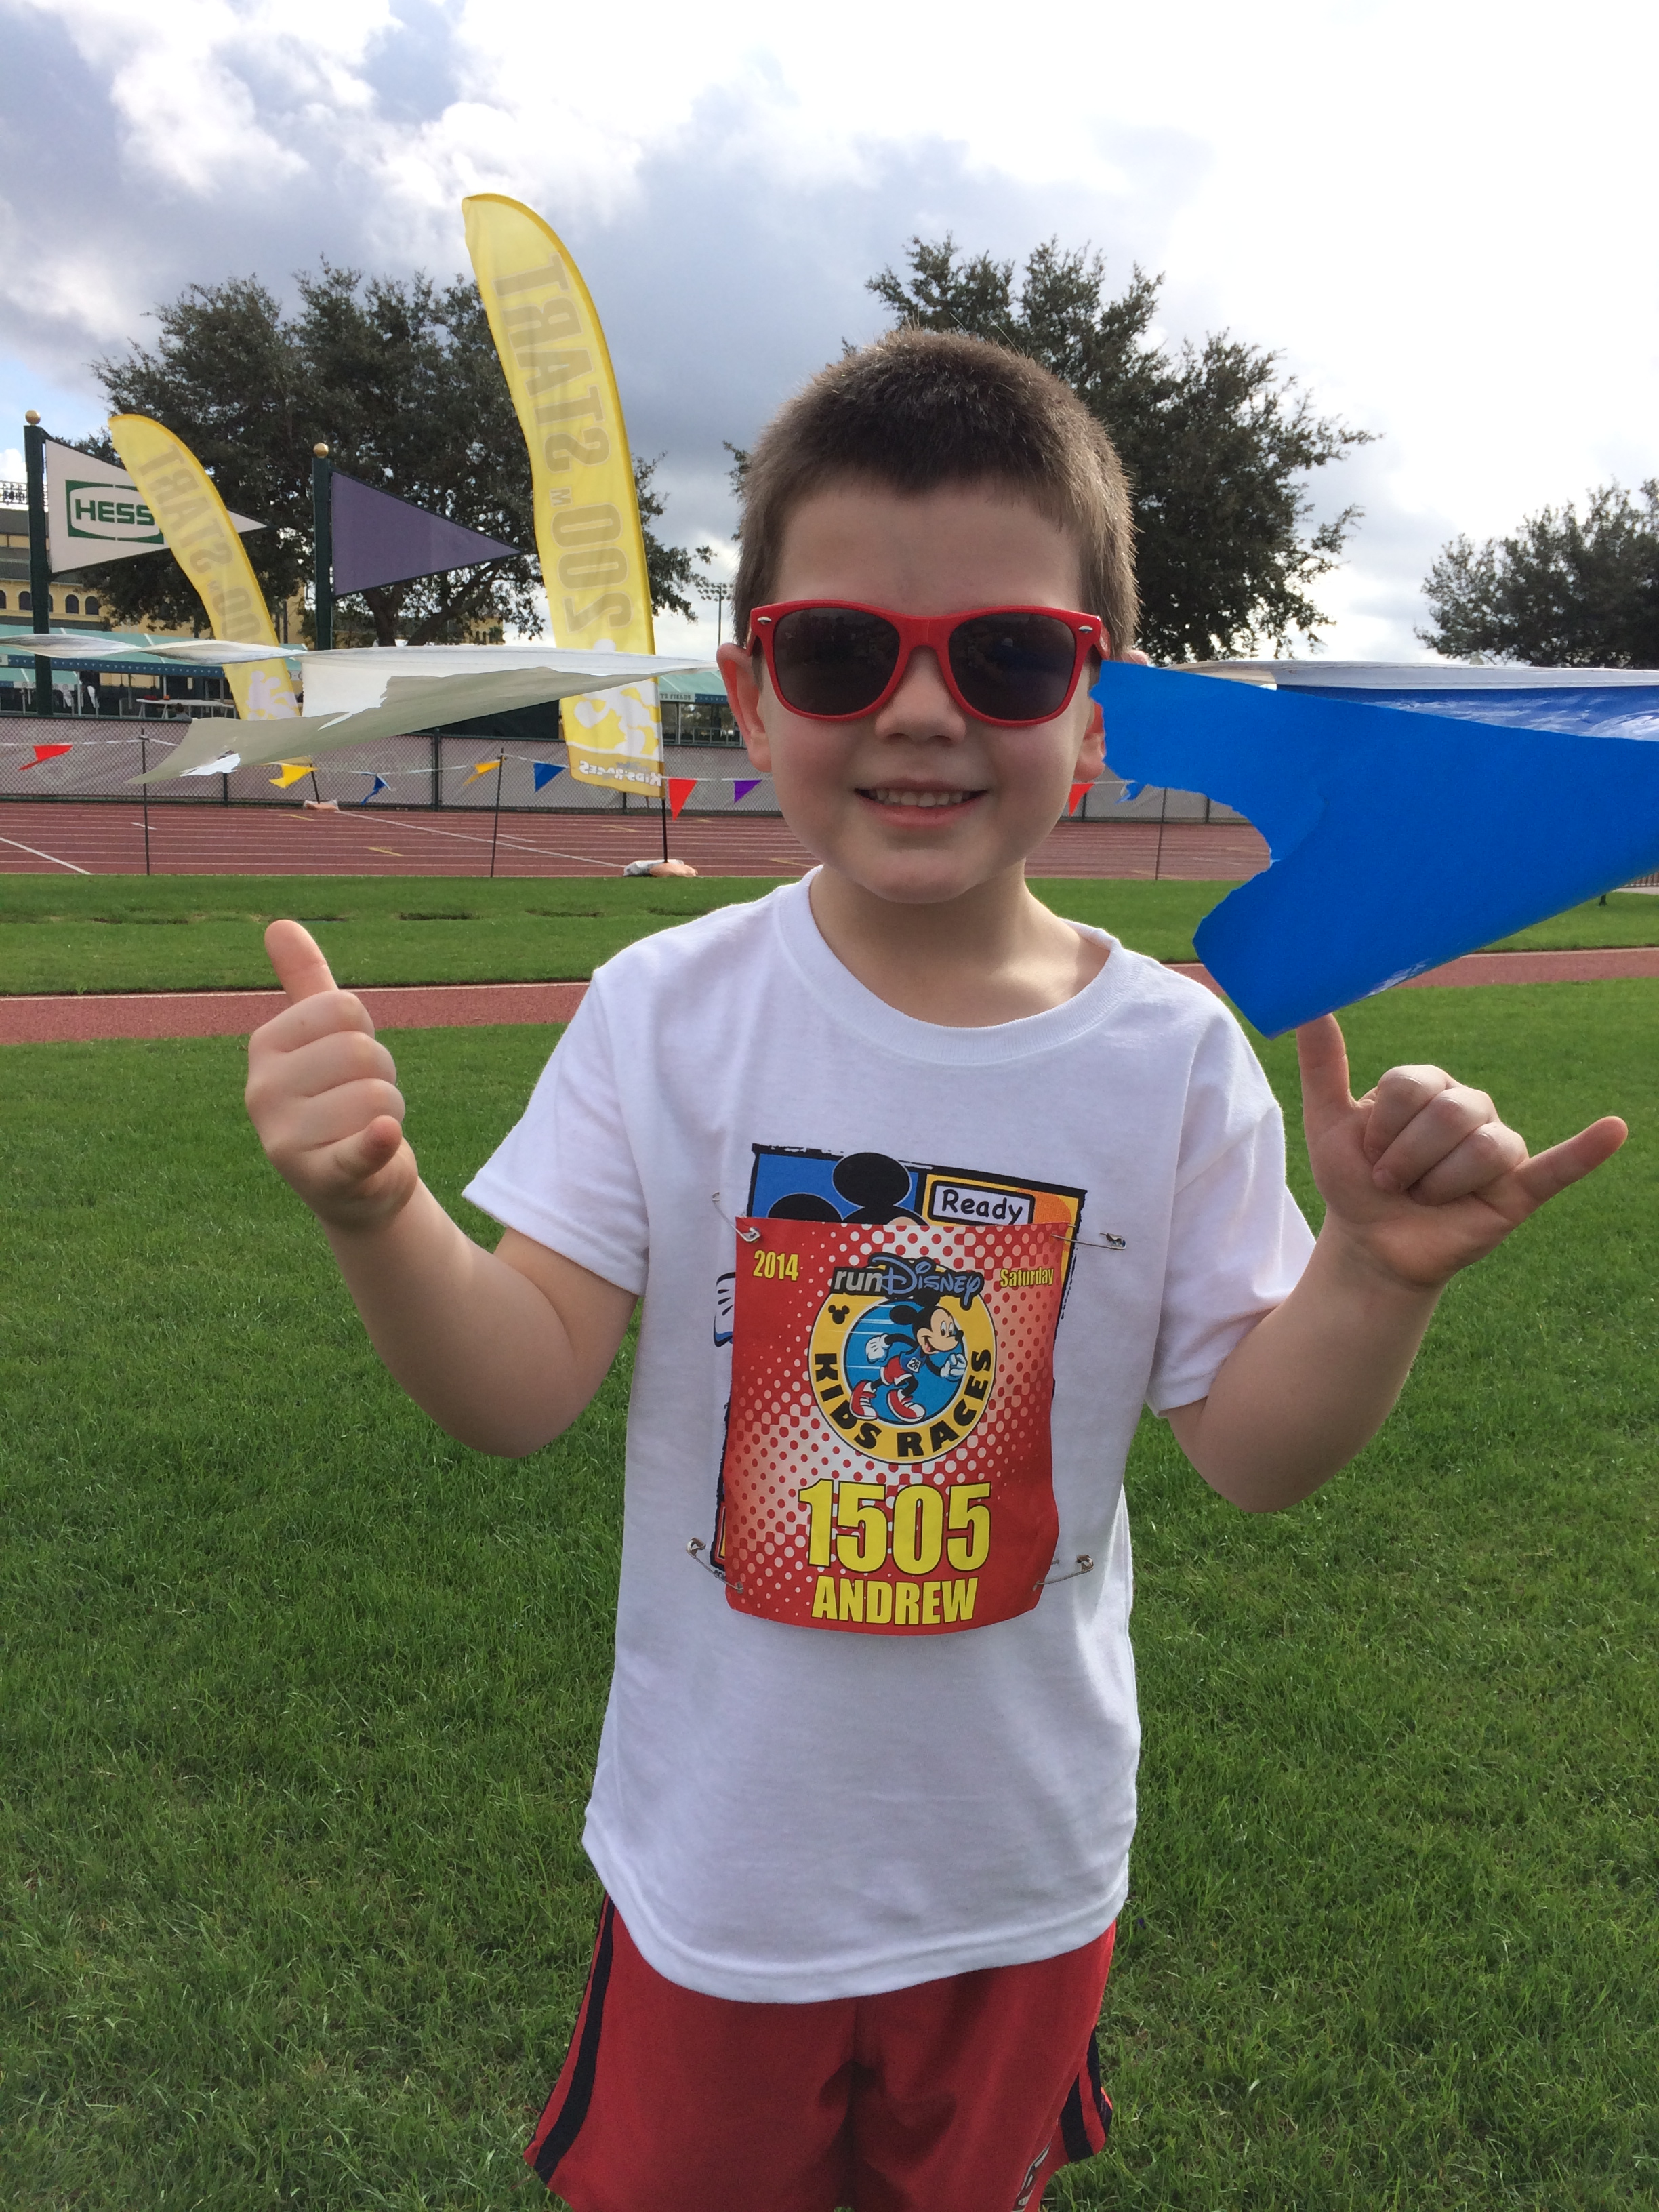 Race Review: runDisney Kids Races